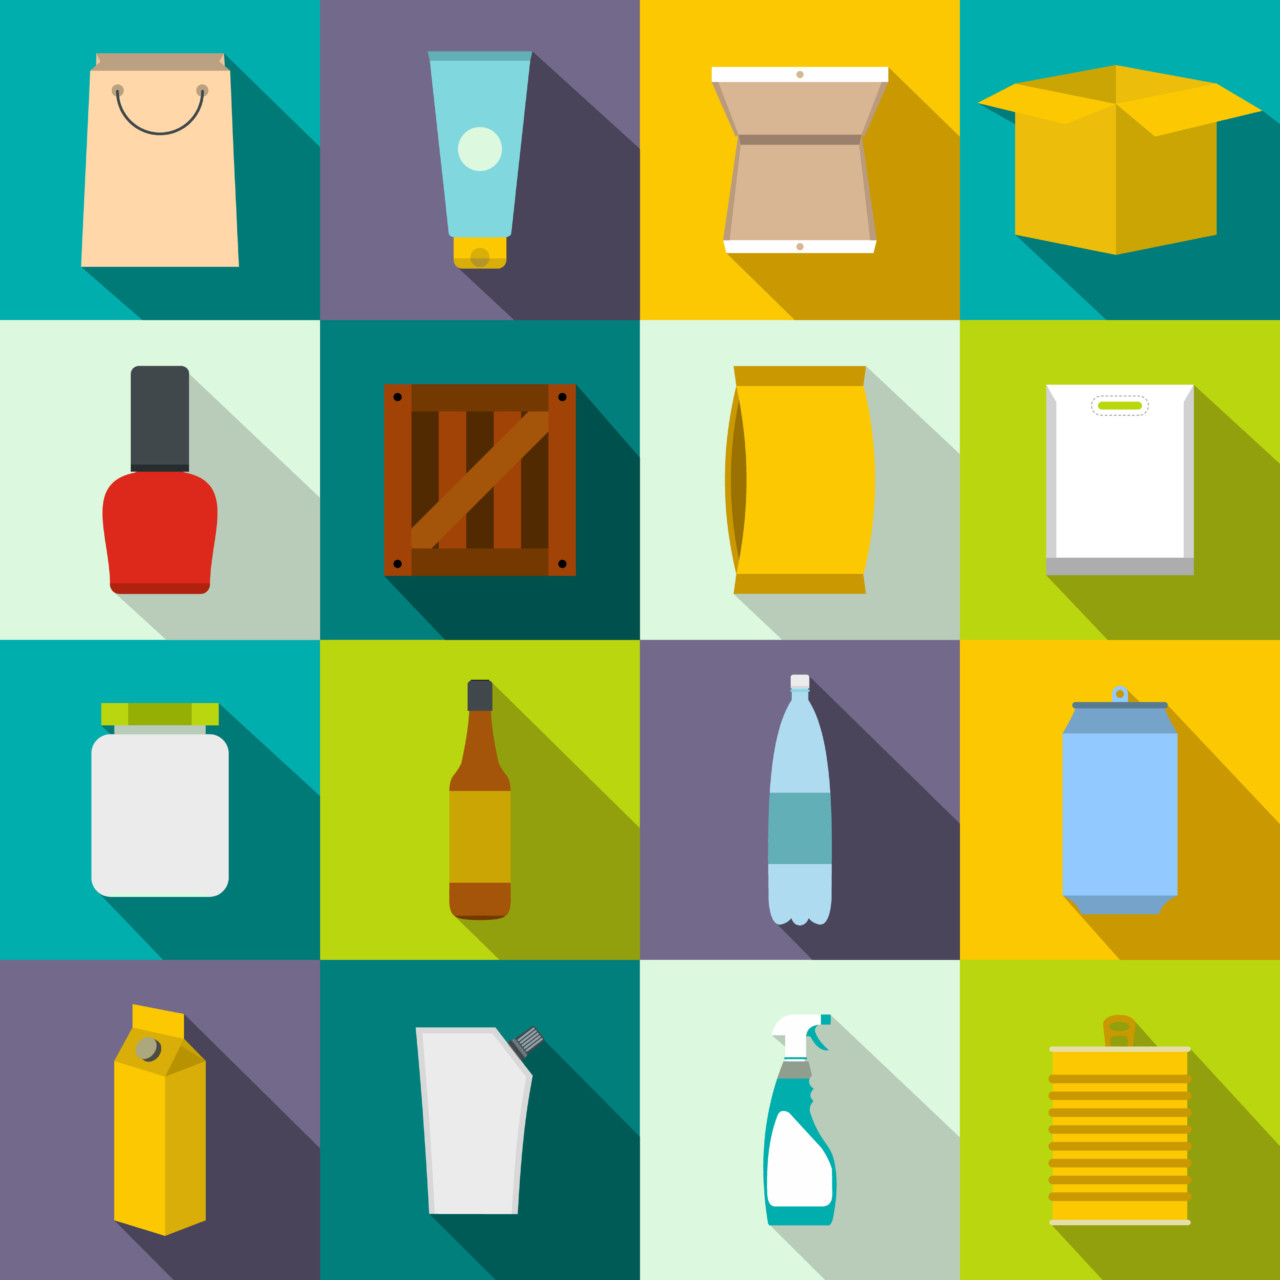 Packaging flat icons set for web and mobile devices